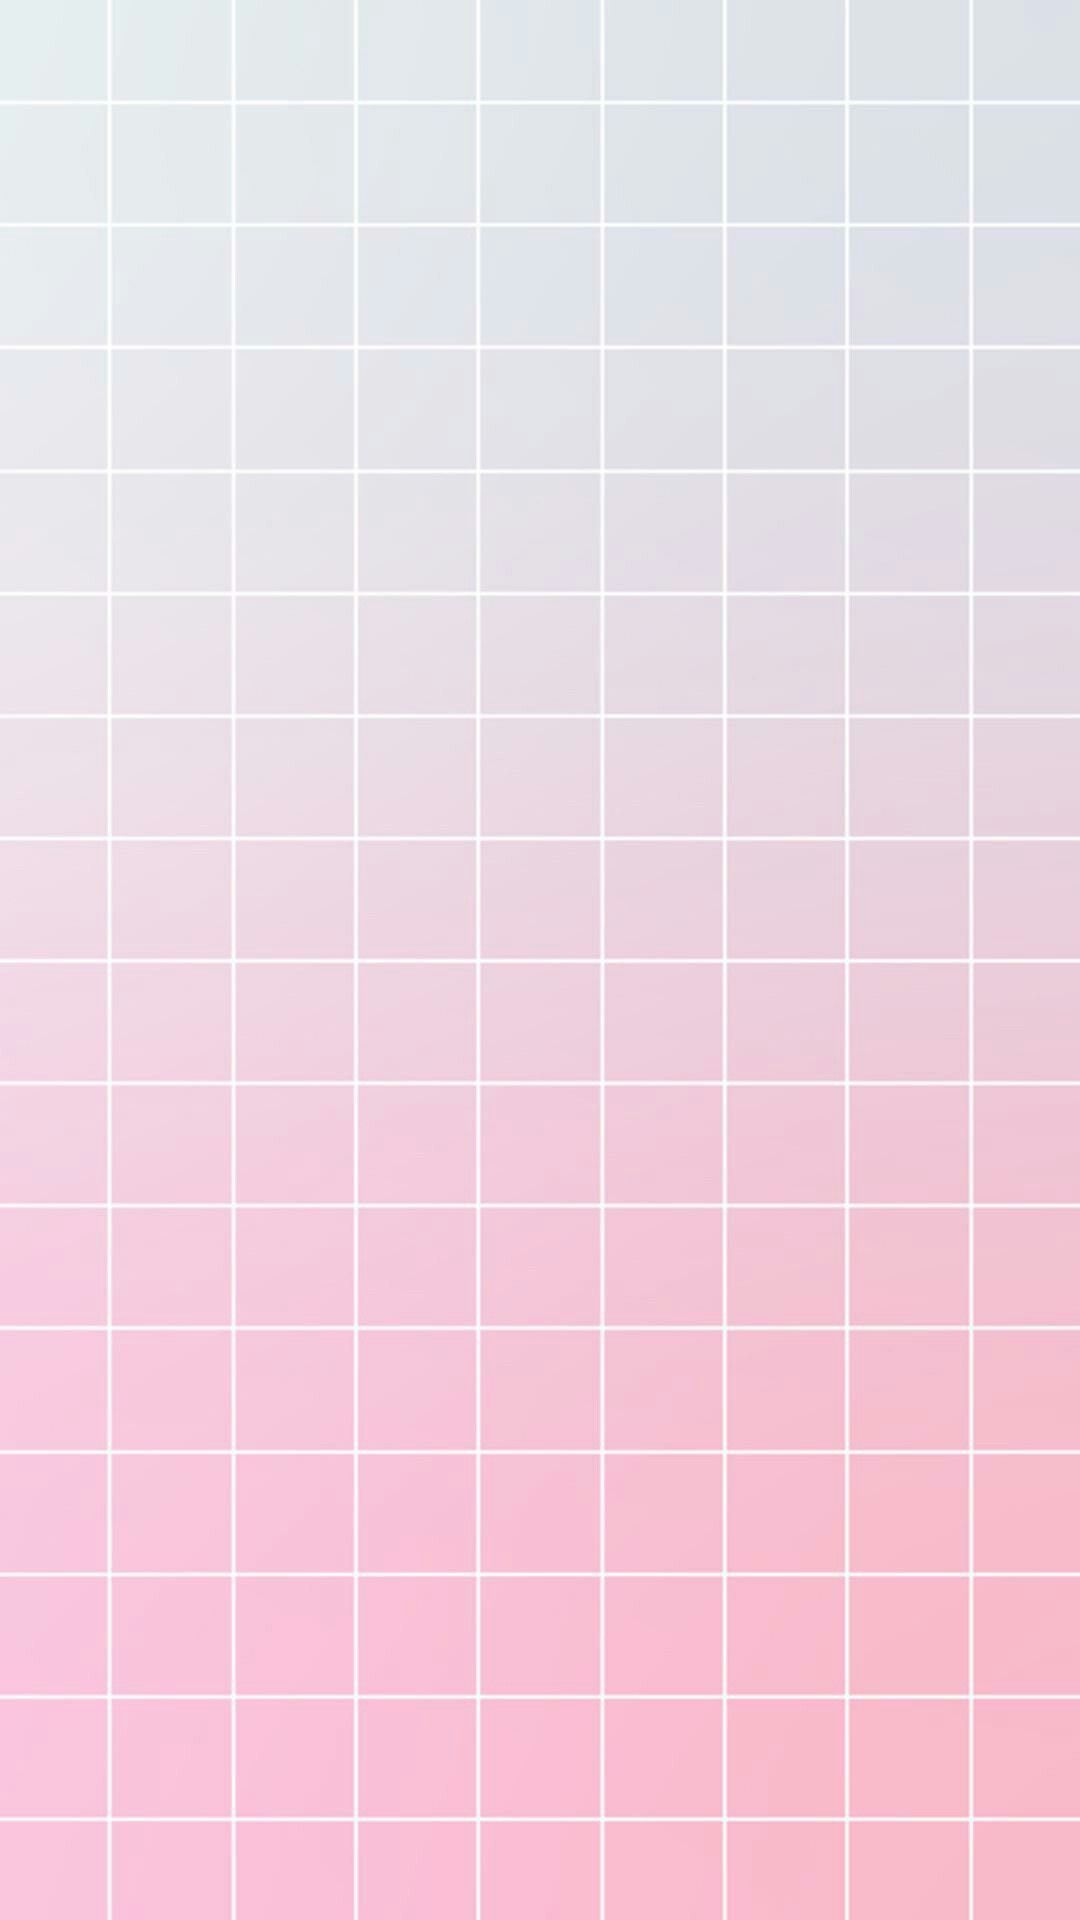 Grid Aesthetic Wallpapers Top Free Grid Aesthetic Backgrounds Wallpaperaccess